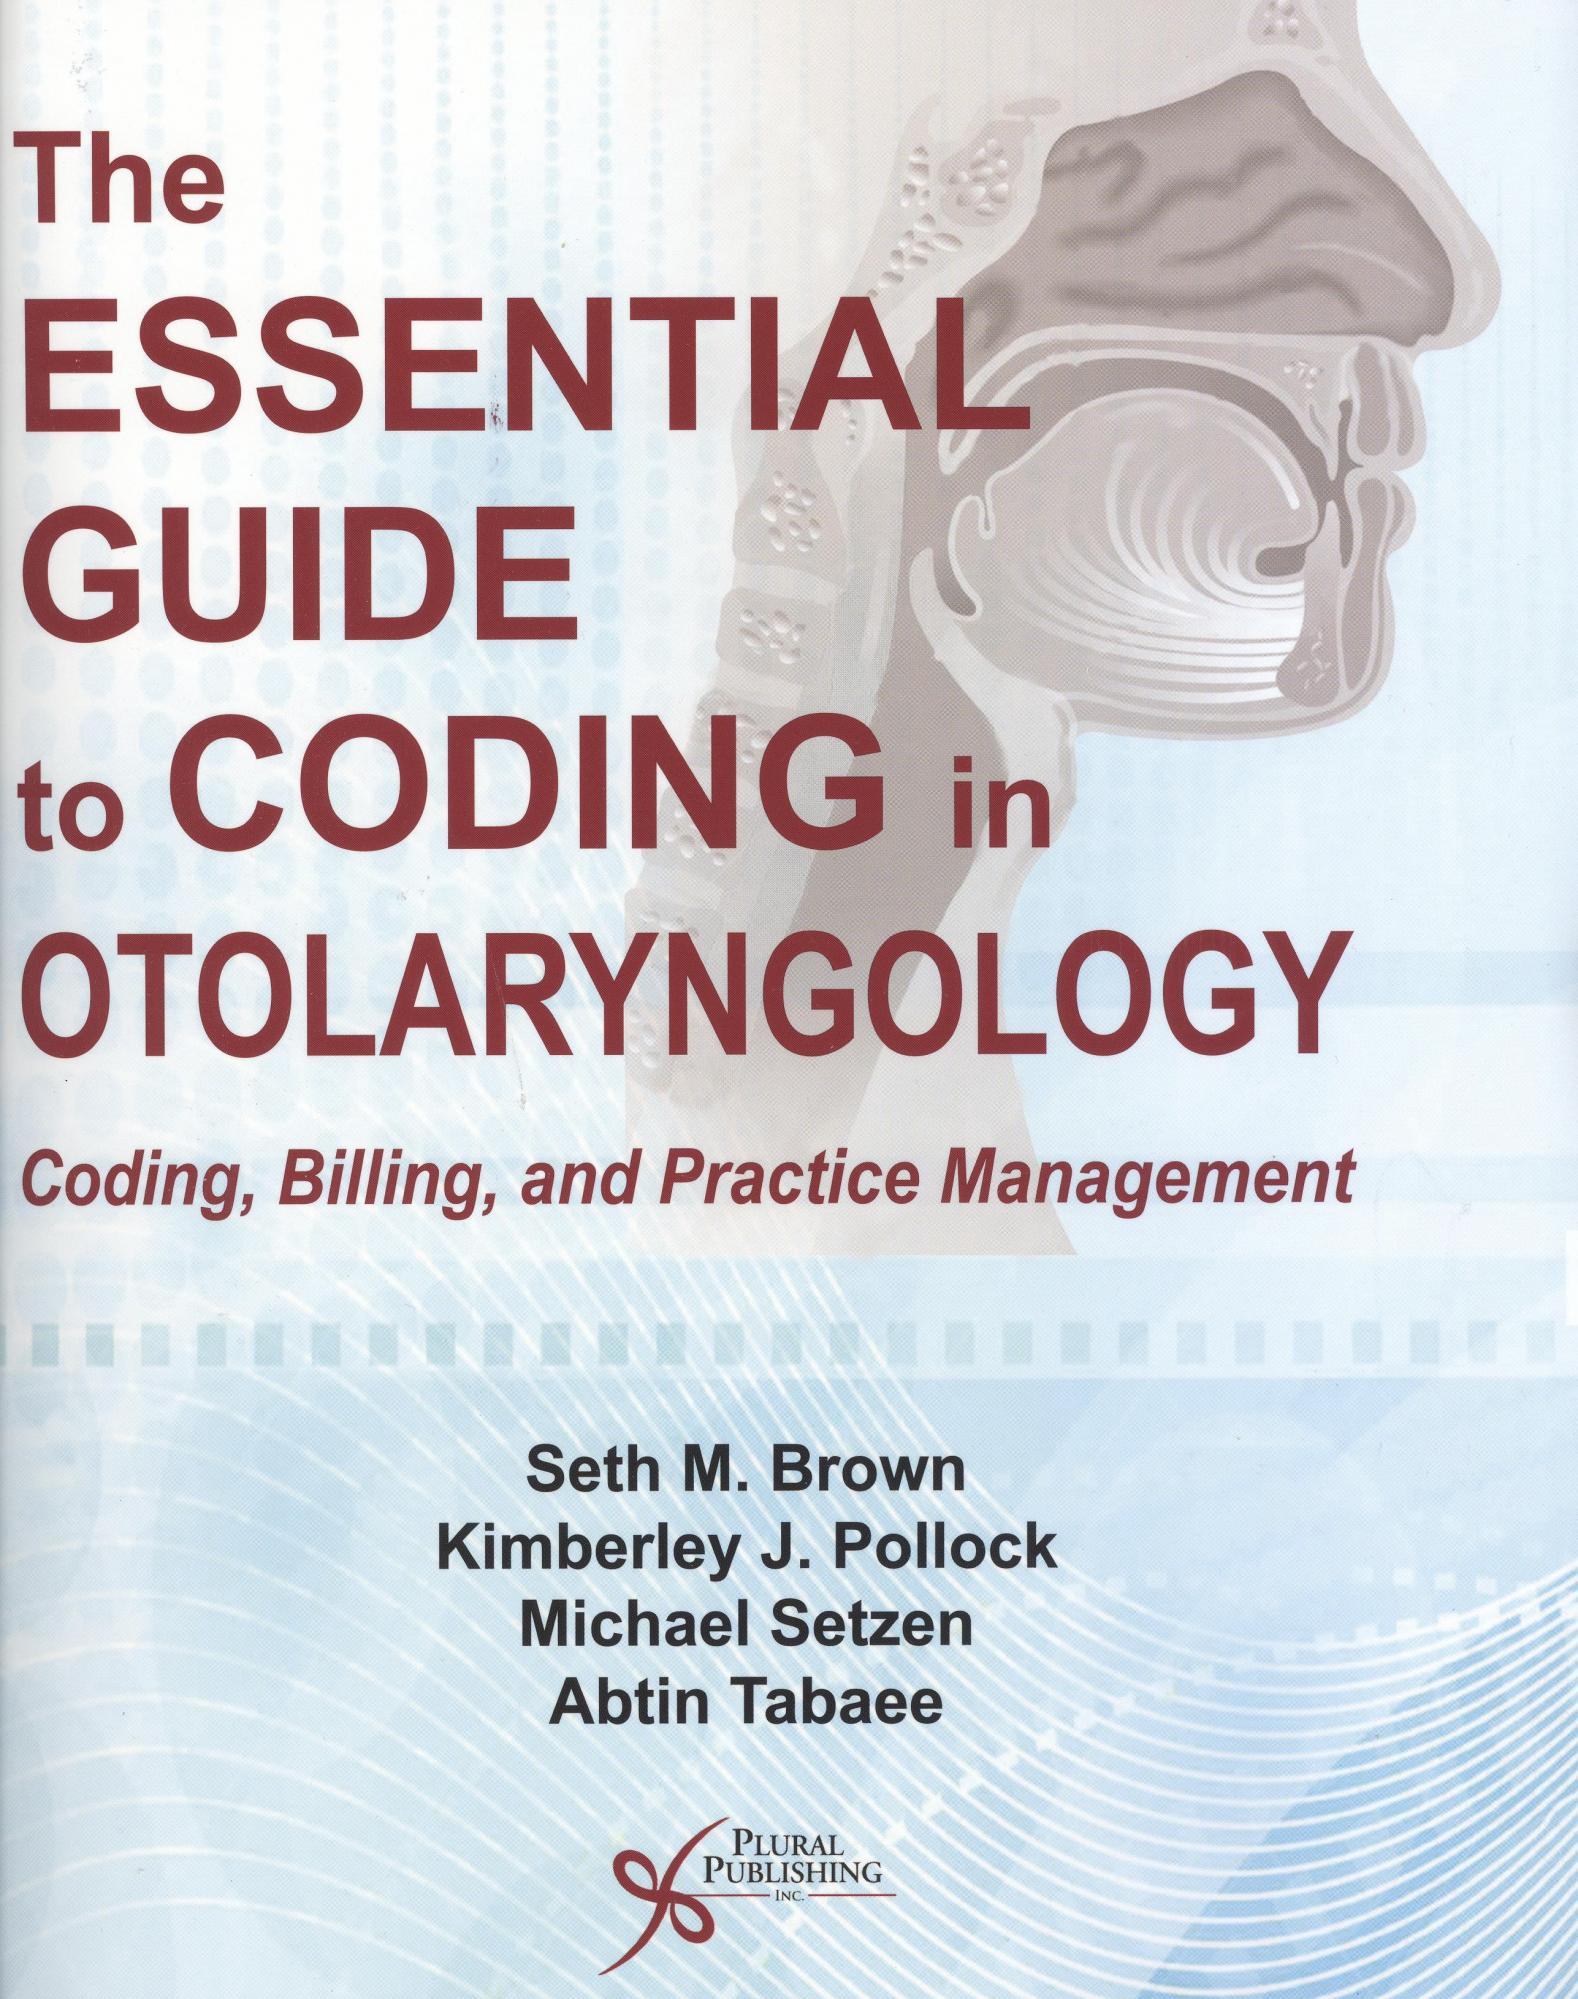 The Essential Guide to Coding in Otolaryngology: Coding, Billing and Practice Management